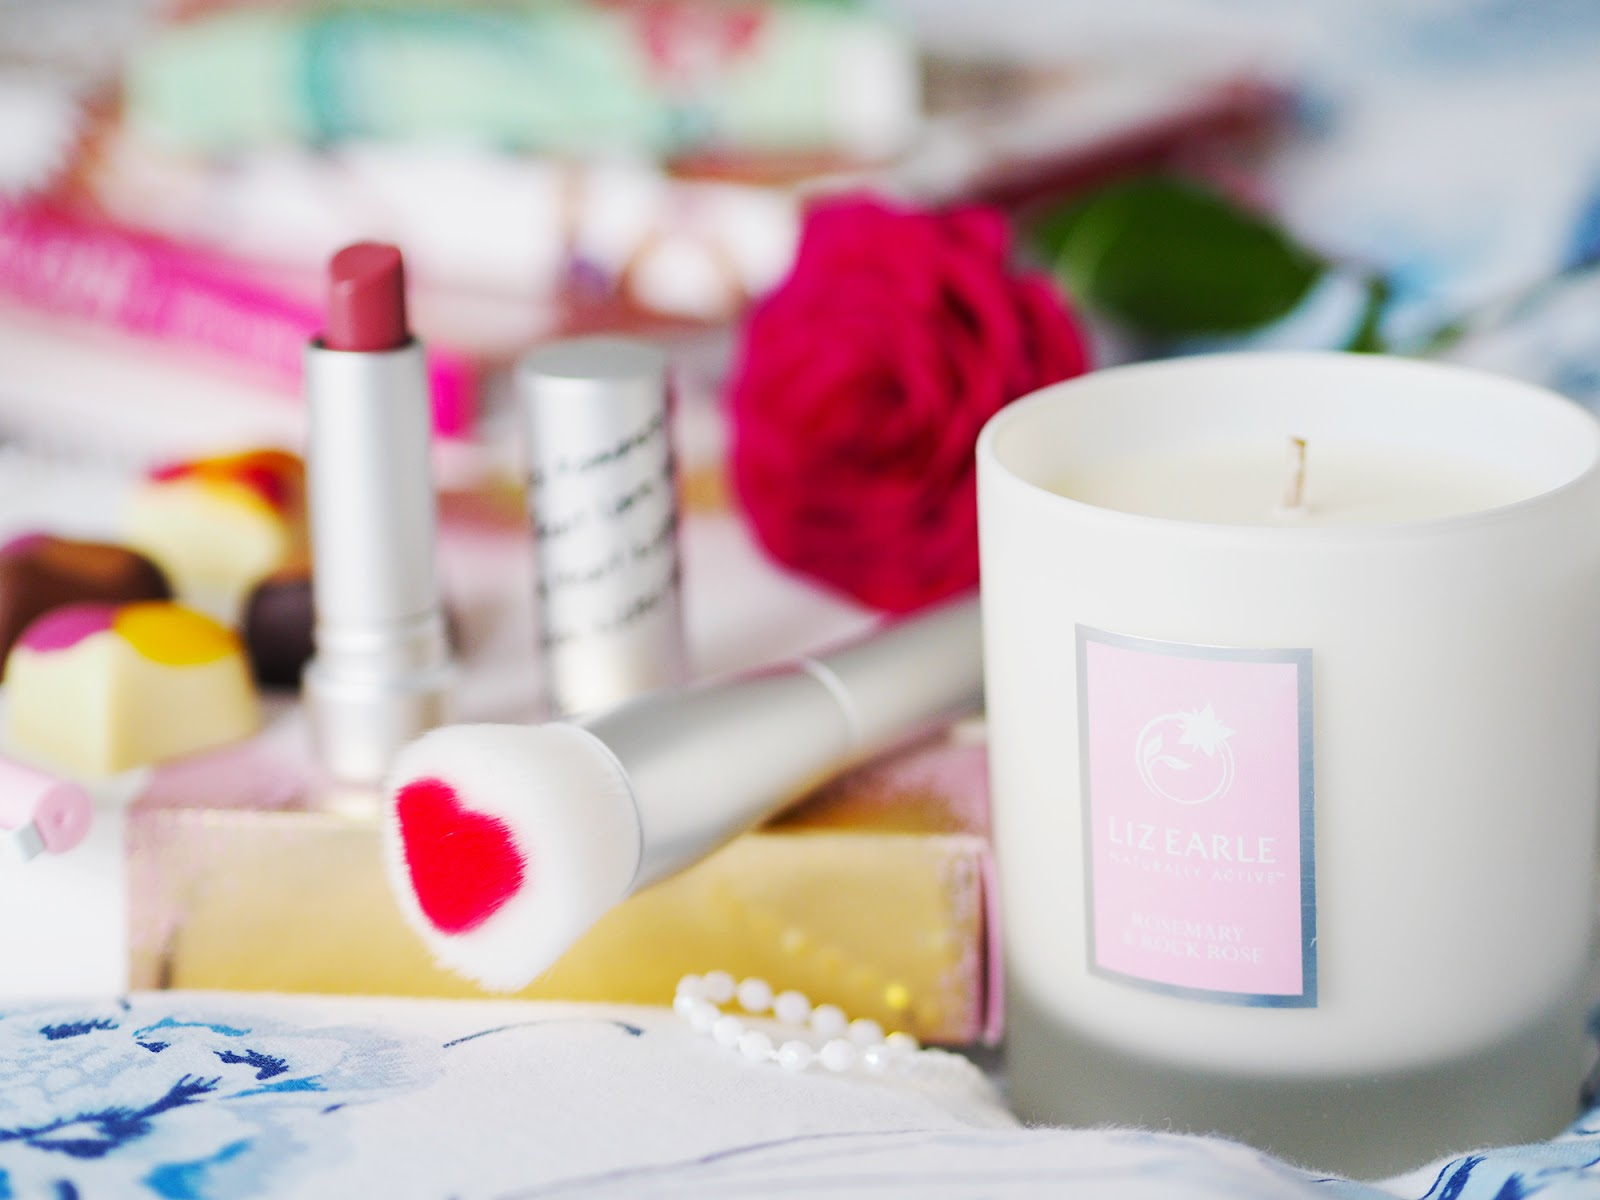 Valentine's gift ideas - Liz Earle Candle